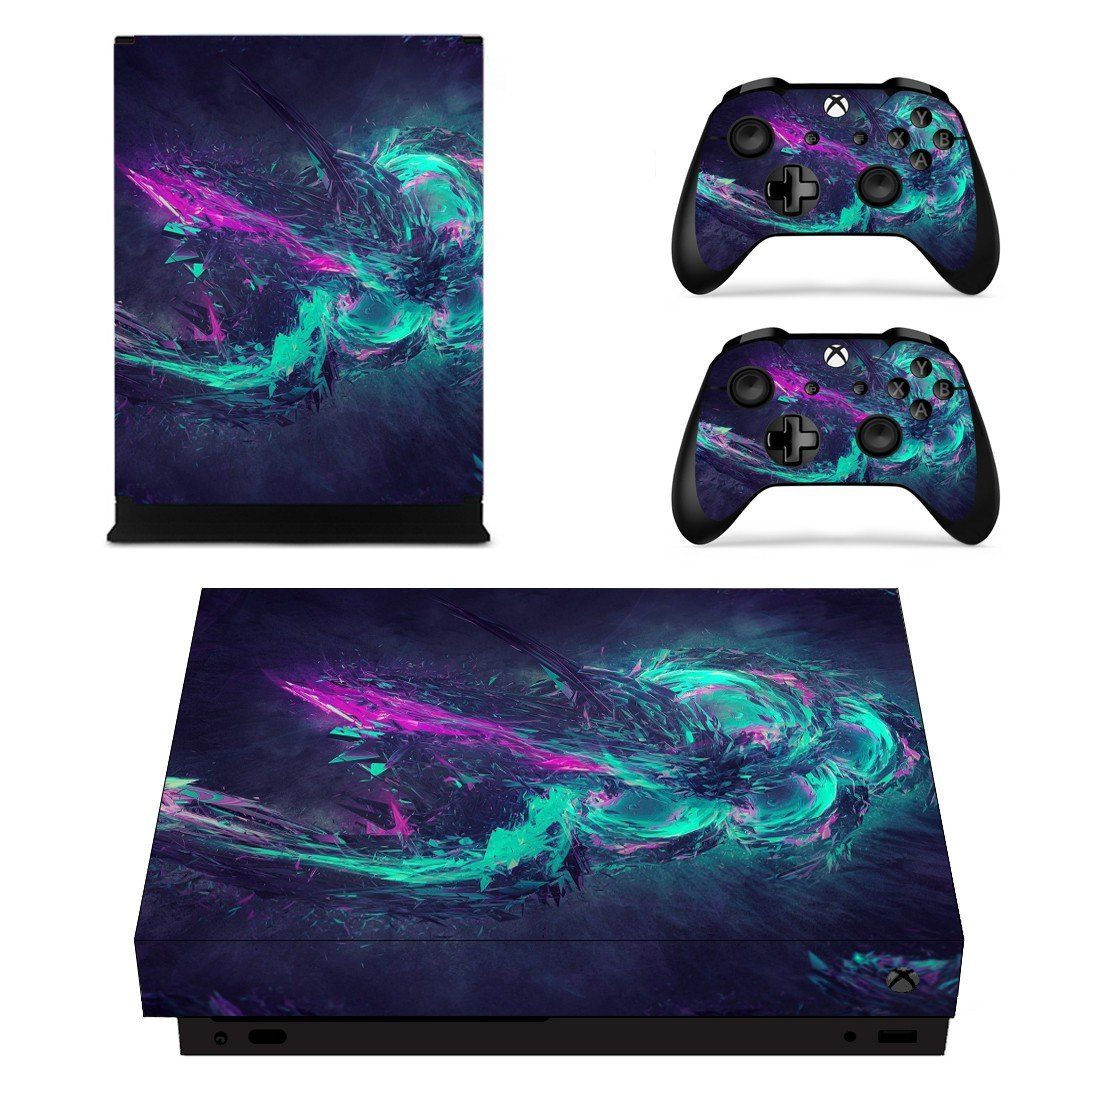 Abstraction decal skin sticker for Xbox One X console and controllers